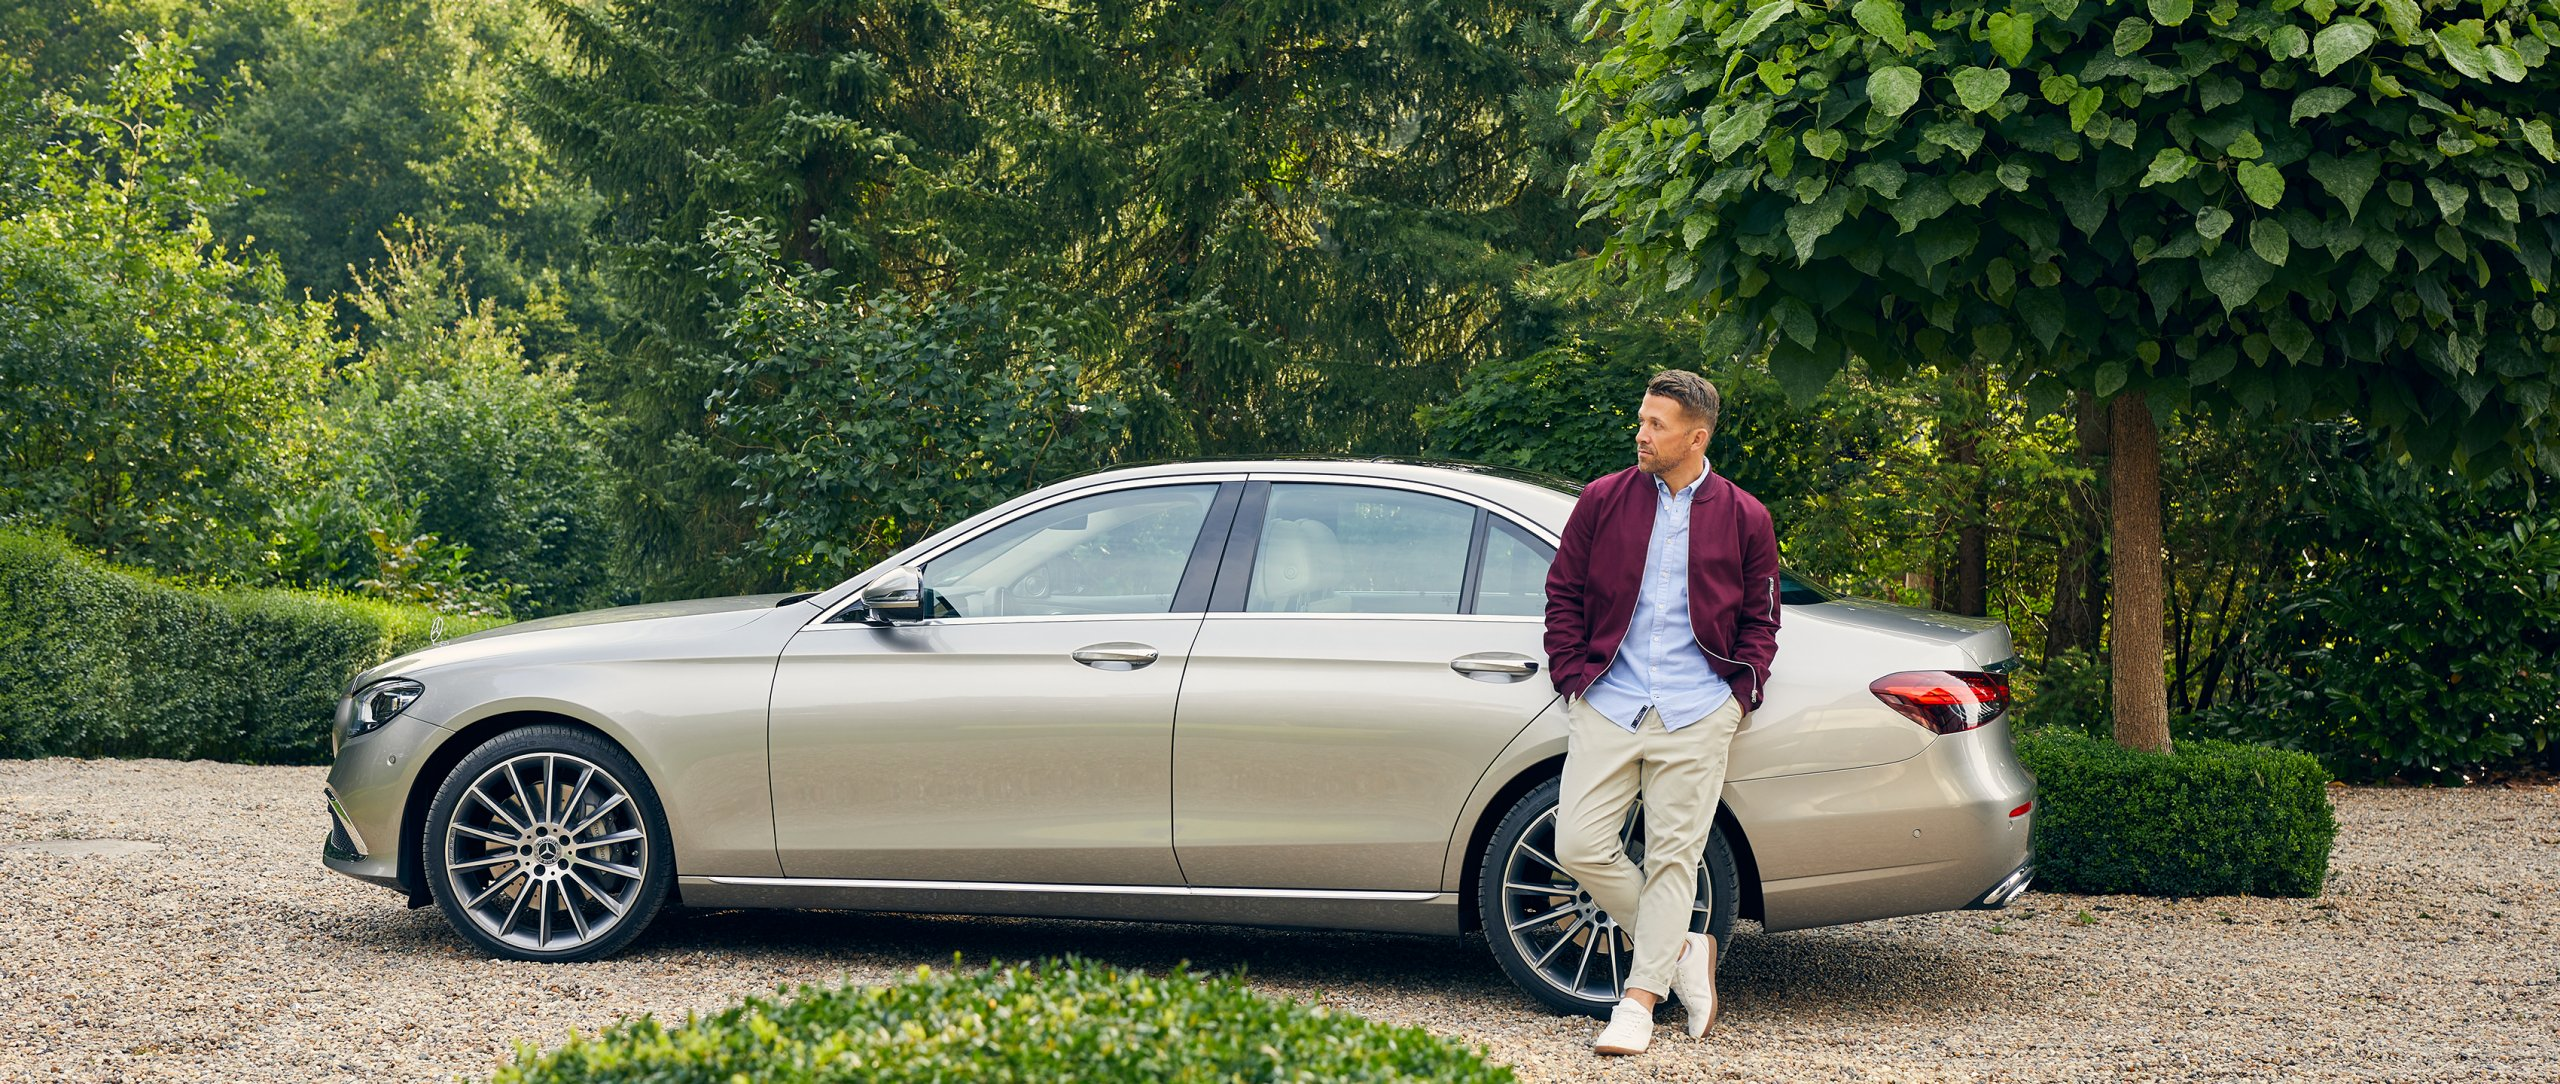 Florian Ambrosius standing in front of the new Mercedes-Benz E-Class.